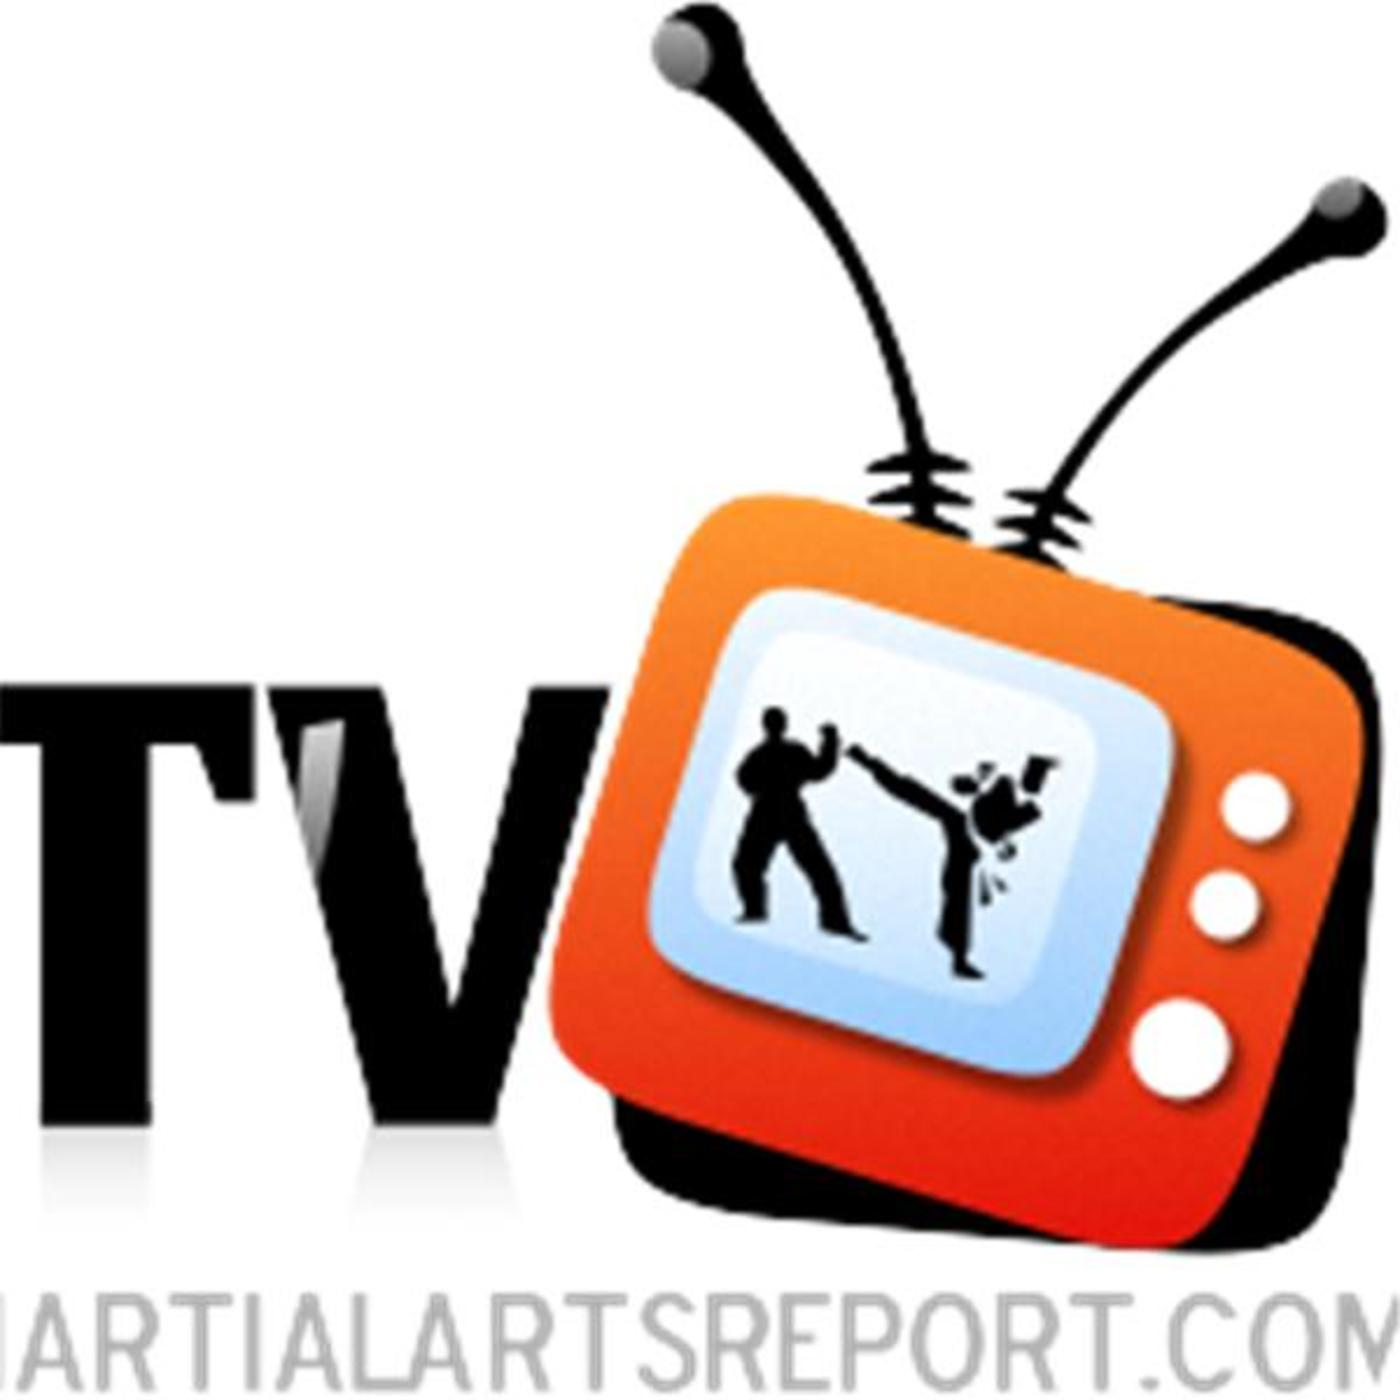 MartialArtsReport.com